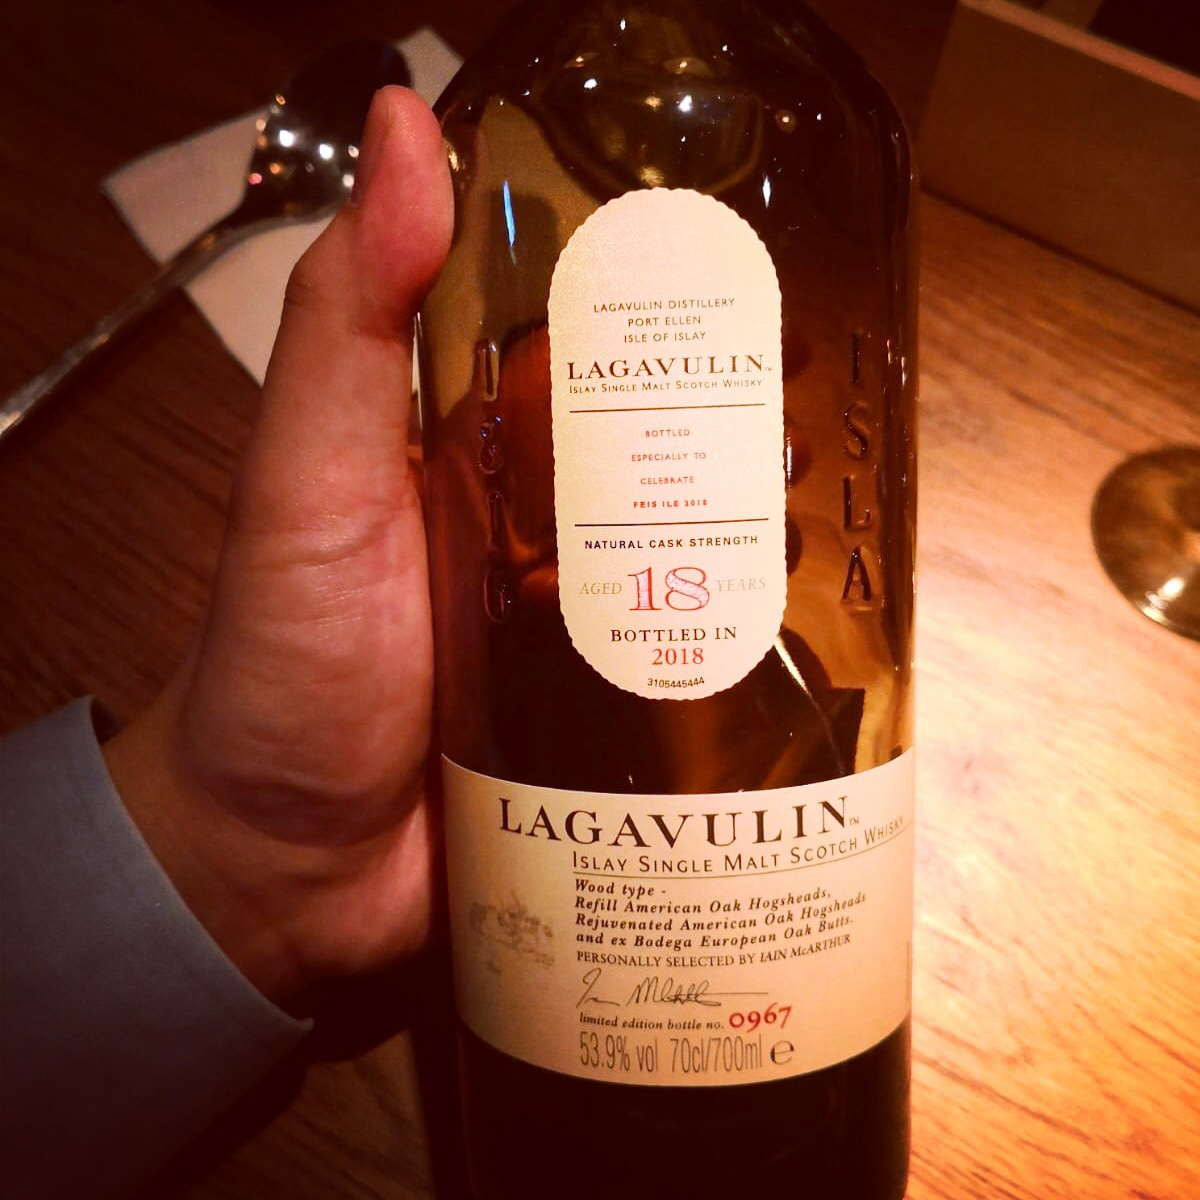 Dram Review: Lagavulin Aged 18 Years Feis Ile 2018